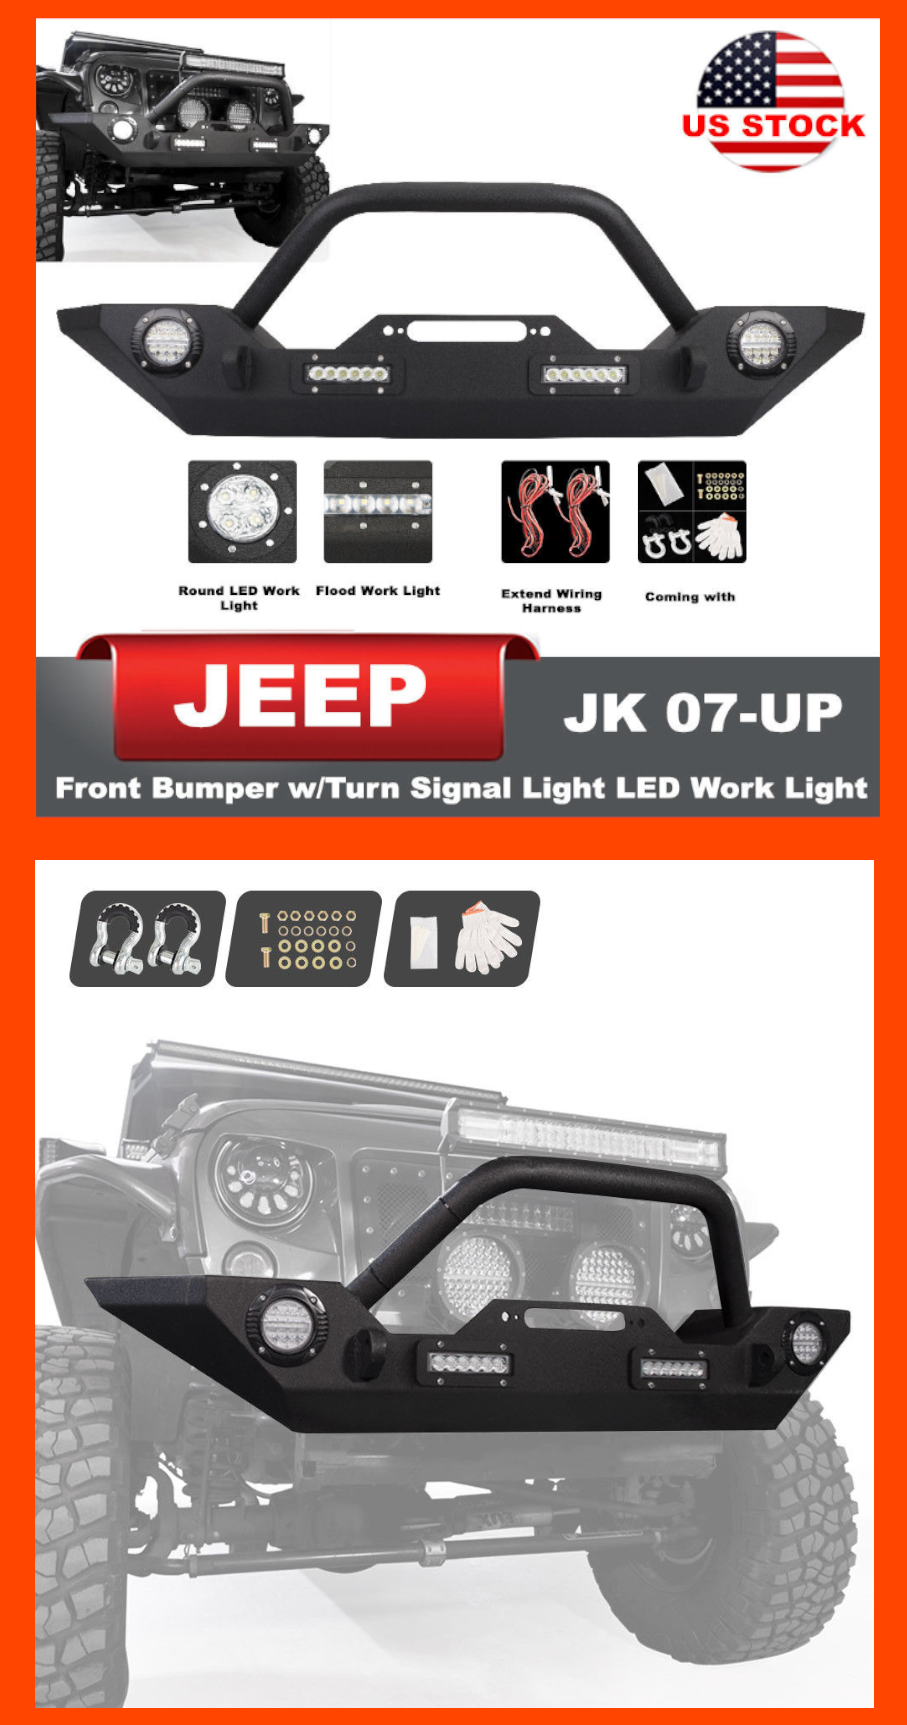 small resolution of front bumper built in winch plate turn signal lights for jeep wrangler jk us 169 90 jeep jeeplife jk wrangler rubicon bumper 4wd offroad suv